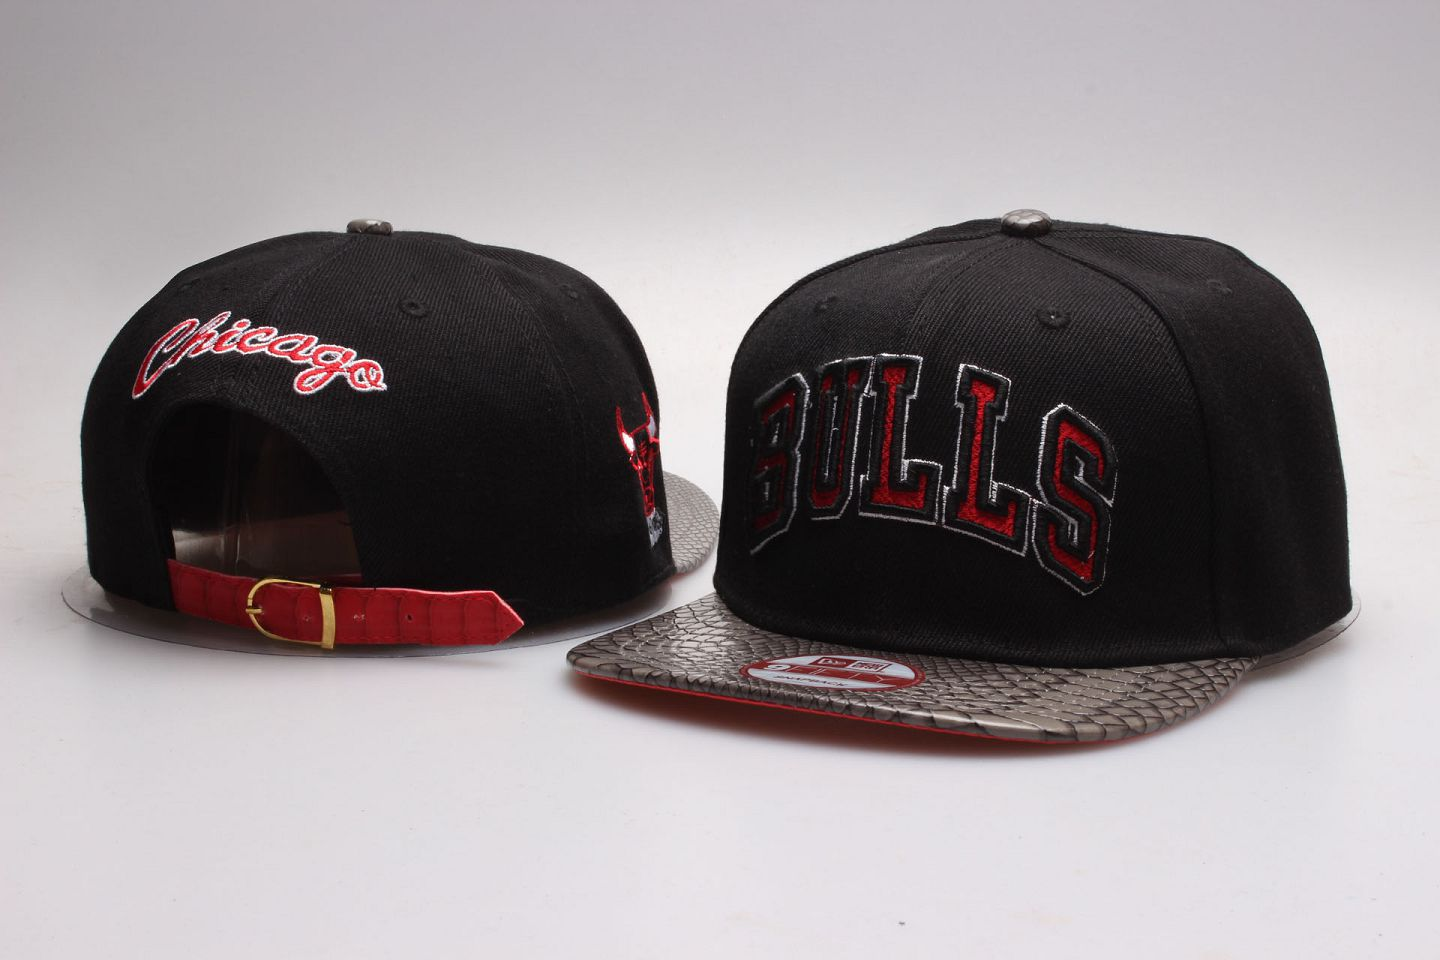 NBA Chicago Bulls Snapback hat 201811254